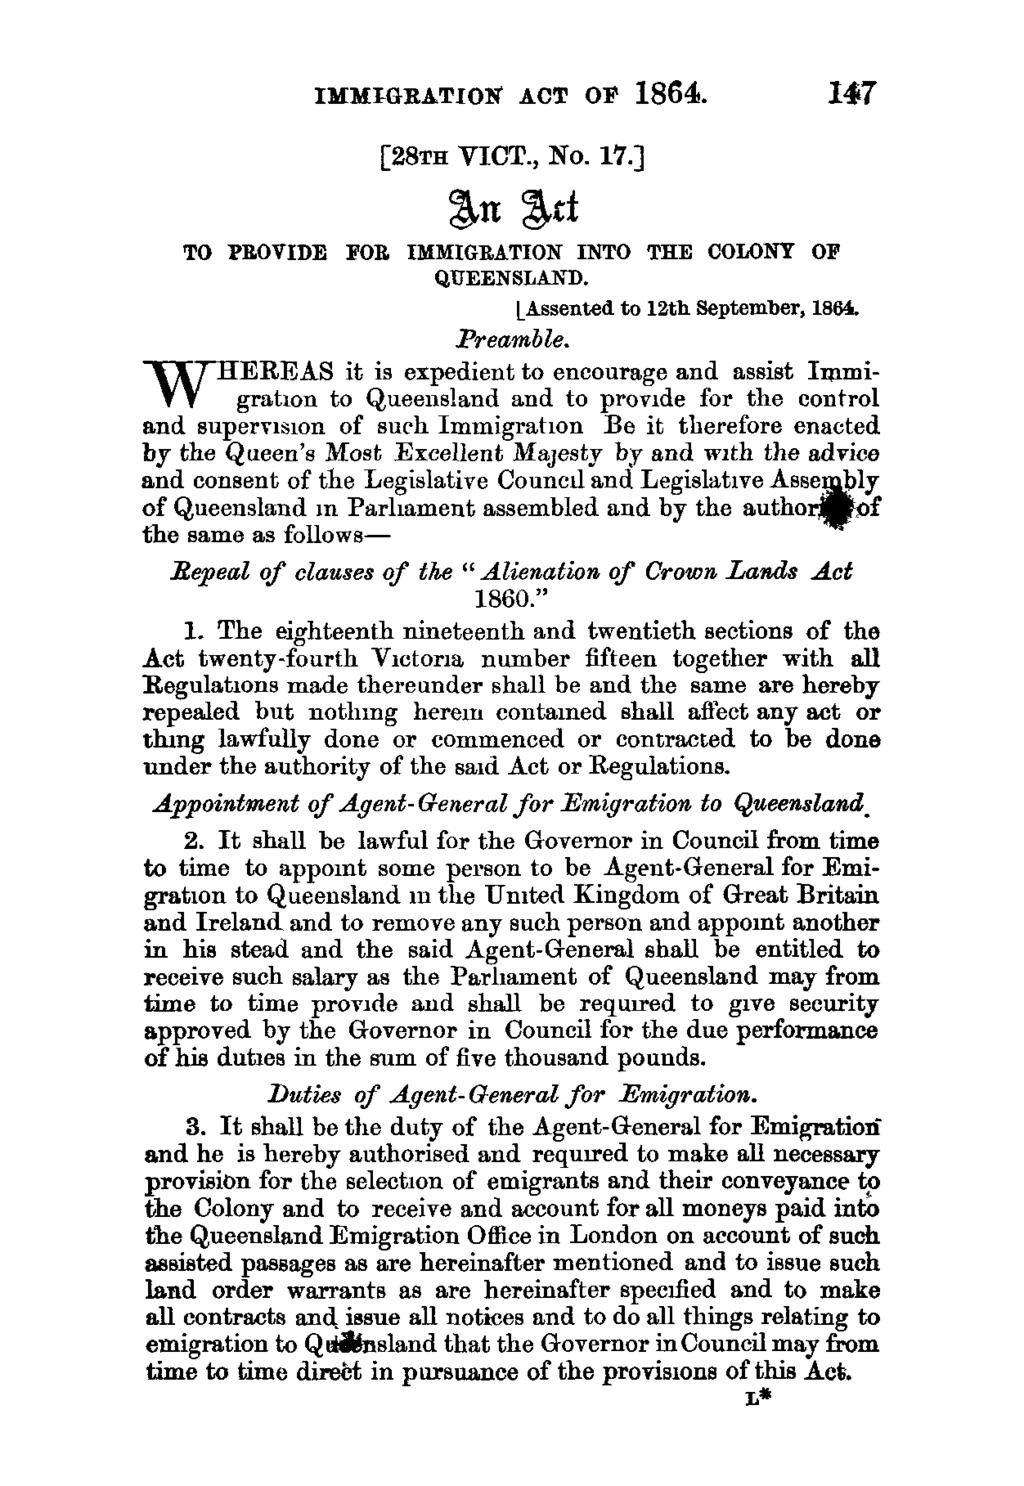 IMMLGEATIONT ACT OF 1864. 147 [28TH VICT., No. 17.] an Ad TO PROVIDE FOR IMMIGRATION INTO THE COLONY OF QUEENSLAND. LAssented to 12th September, 1864, Preamble.